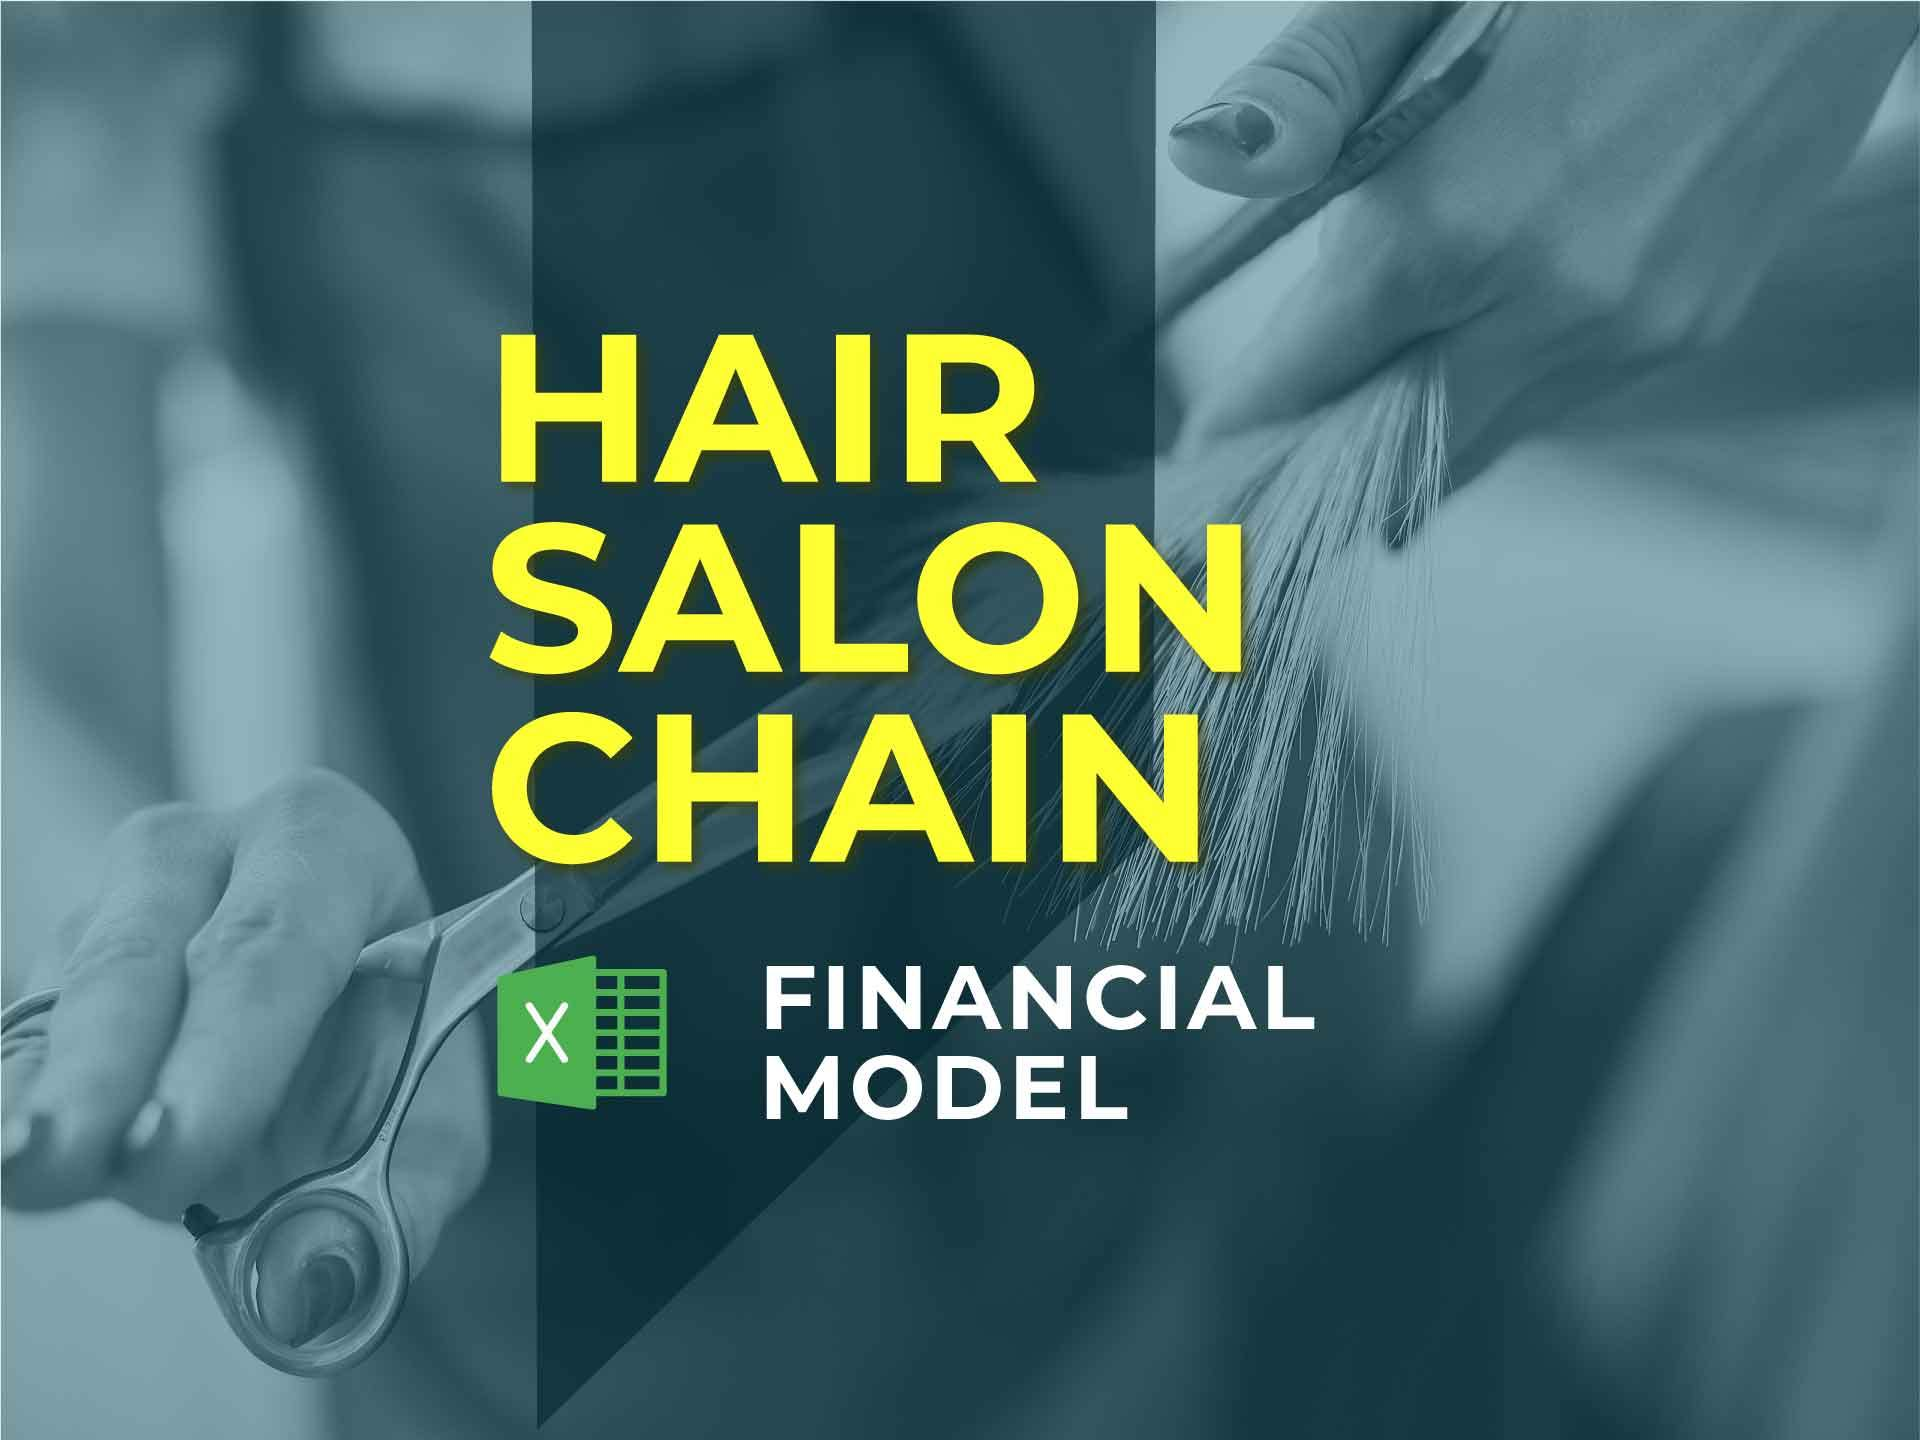 Hair Salon Chain